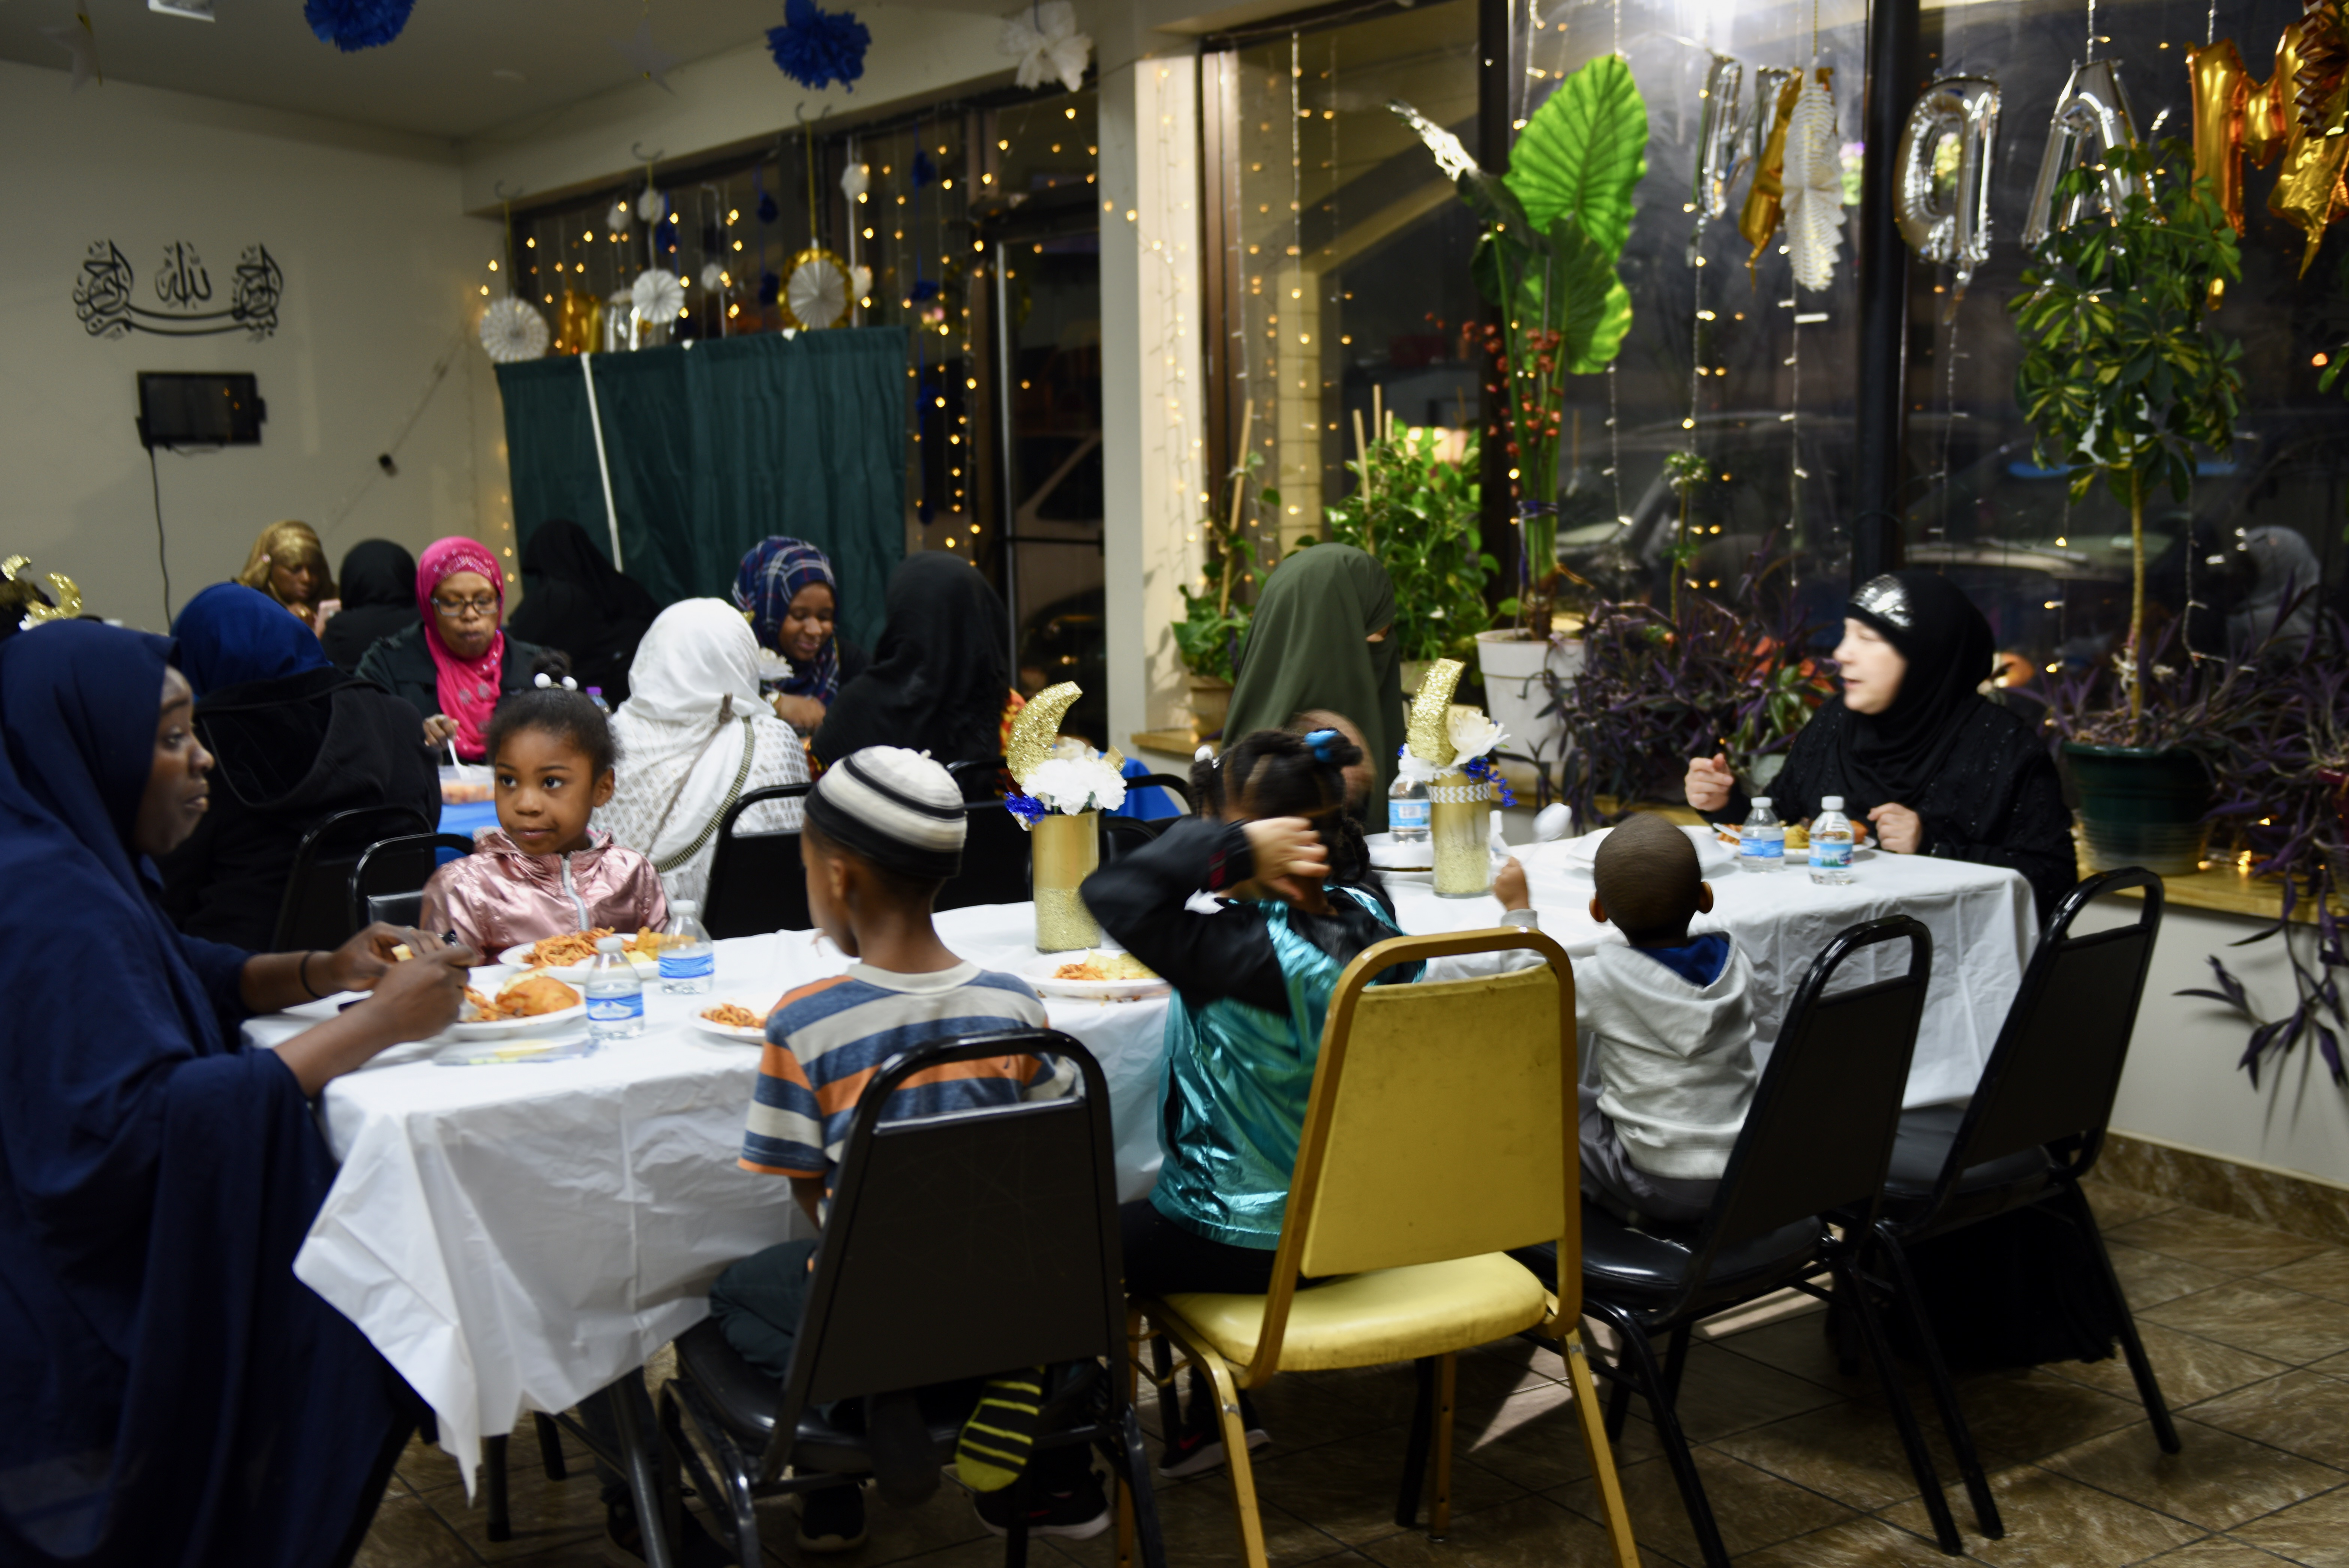 Women and child eat separately from men at the Dawah Center. Photo by Sue Vliet/NNS.